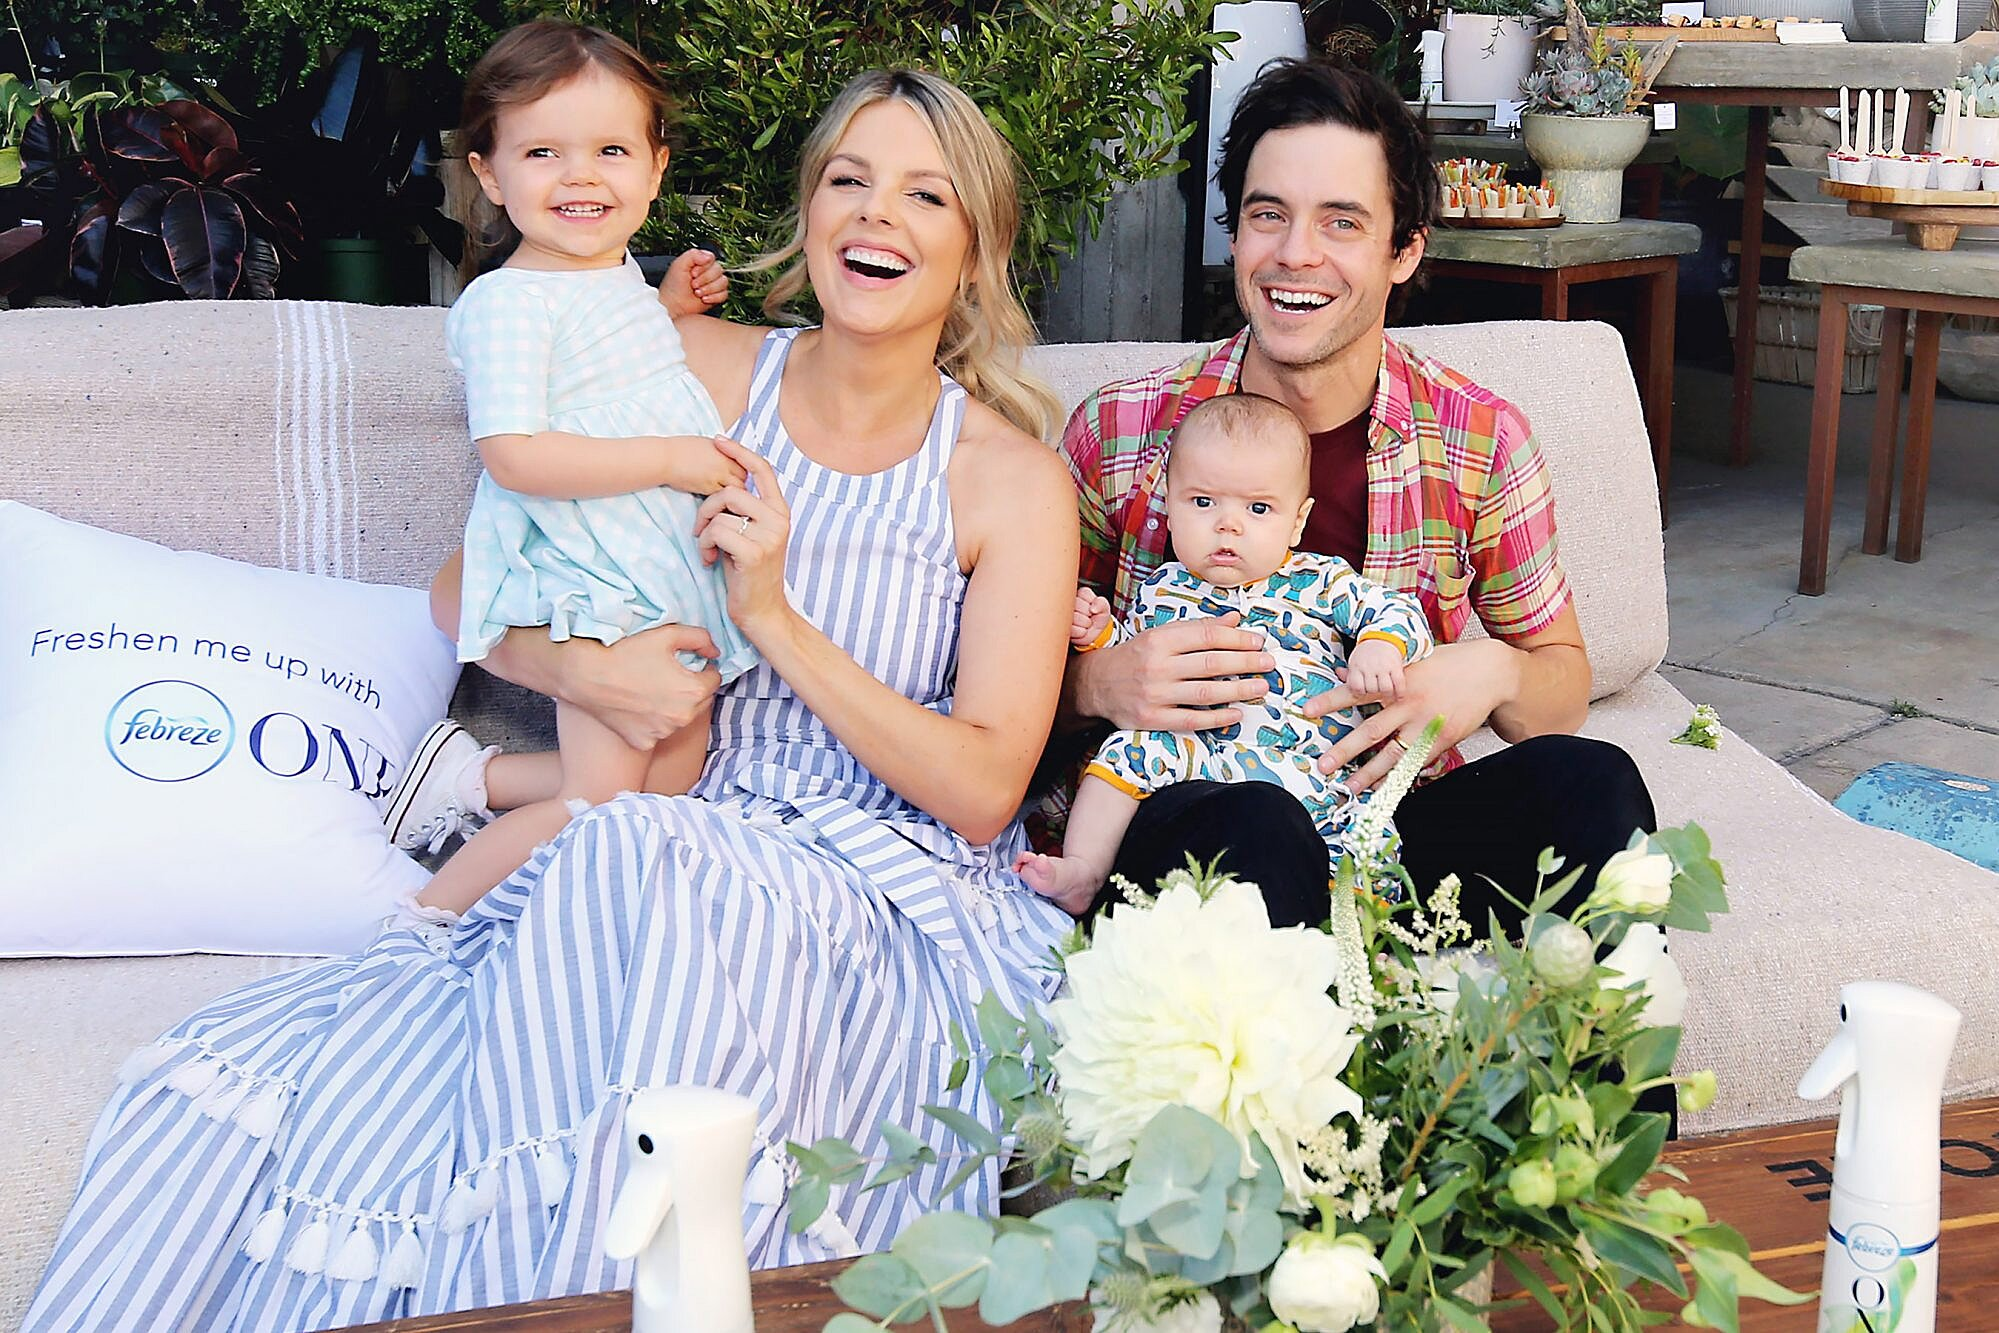 Ali Fedotowsky Manno And Husband Are Back In Same Bed After Baby People Com